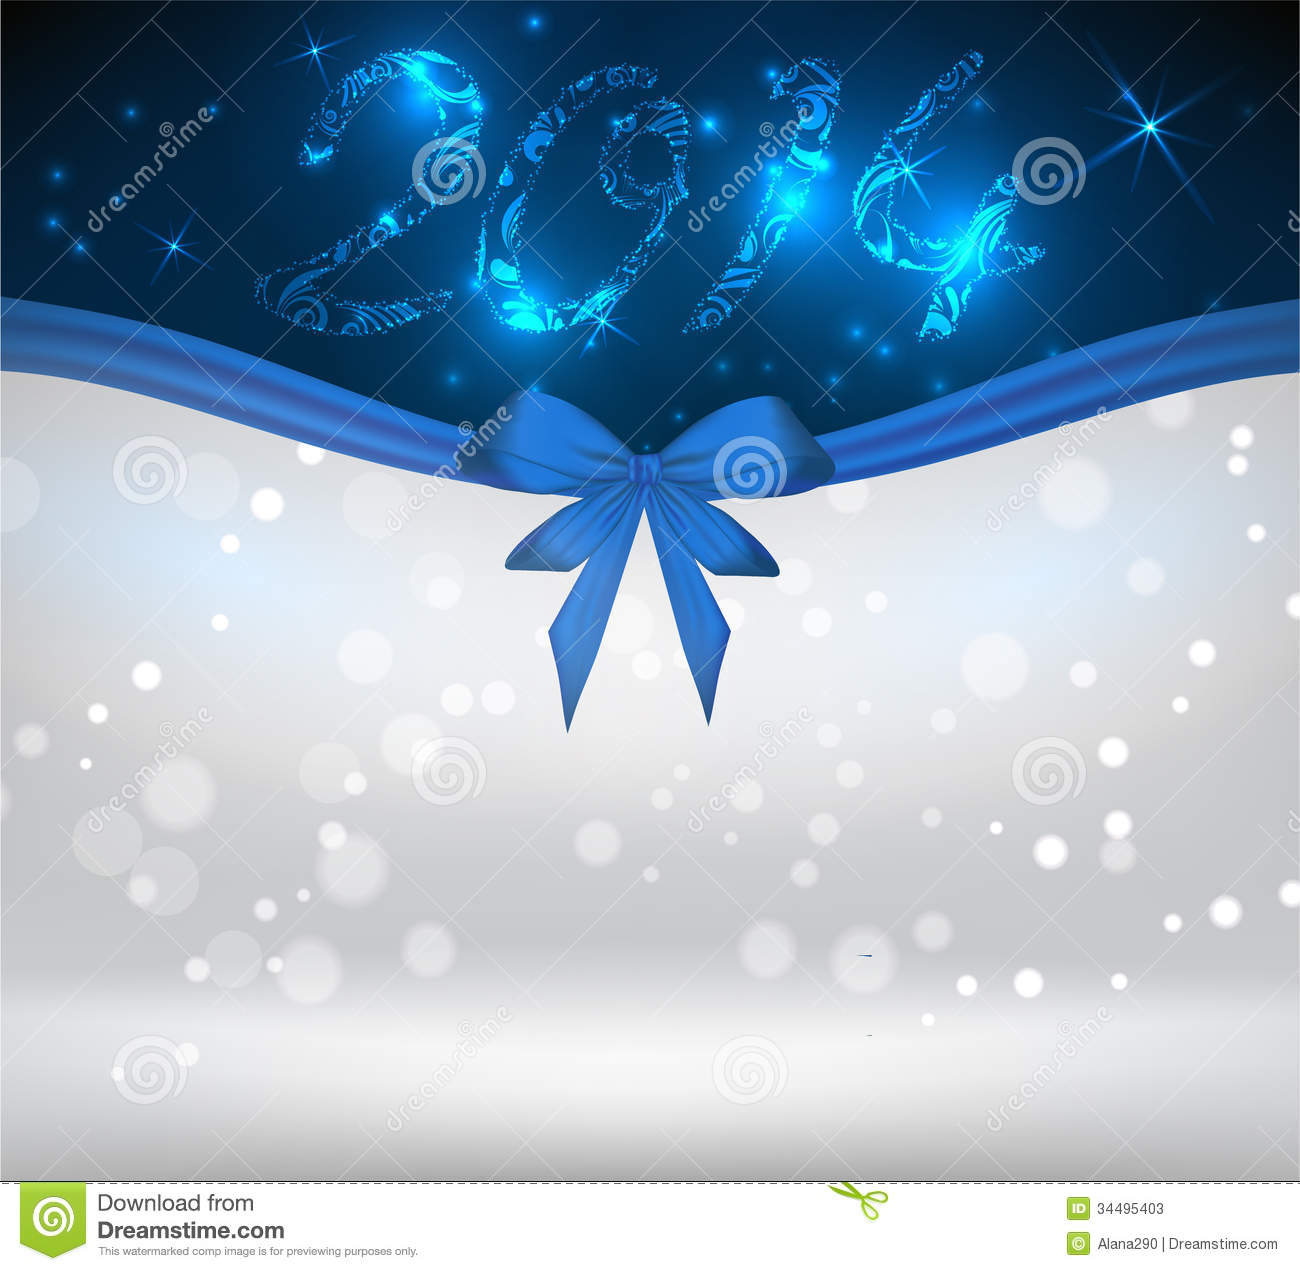 holiday background with blue bow ribbon